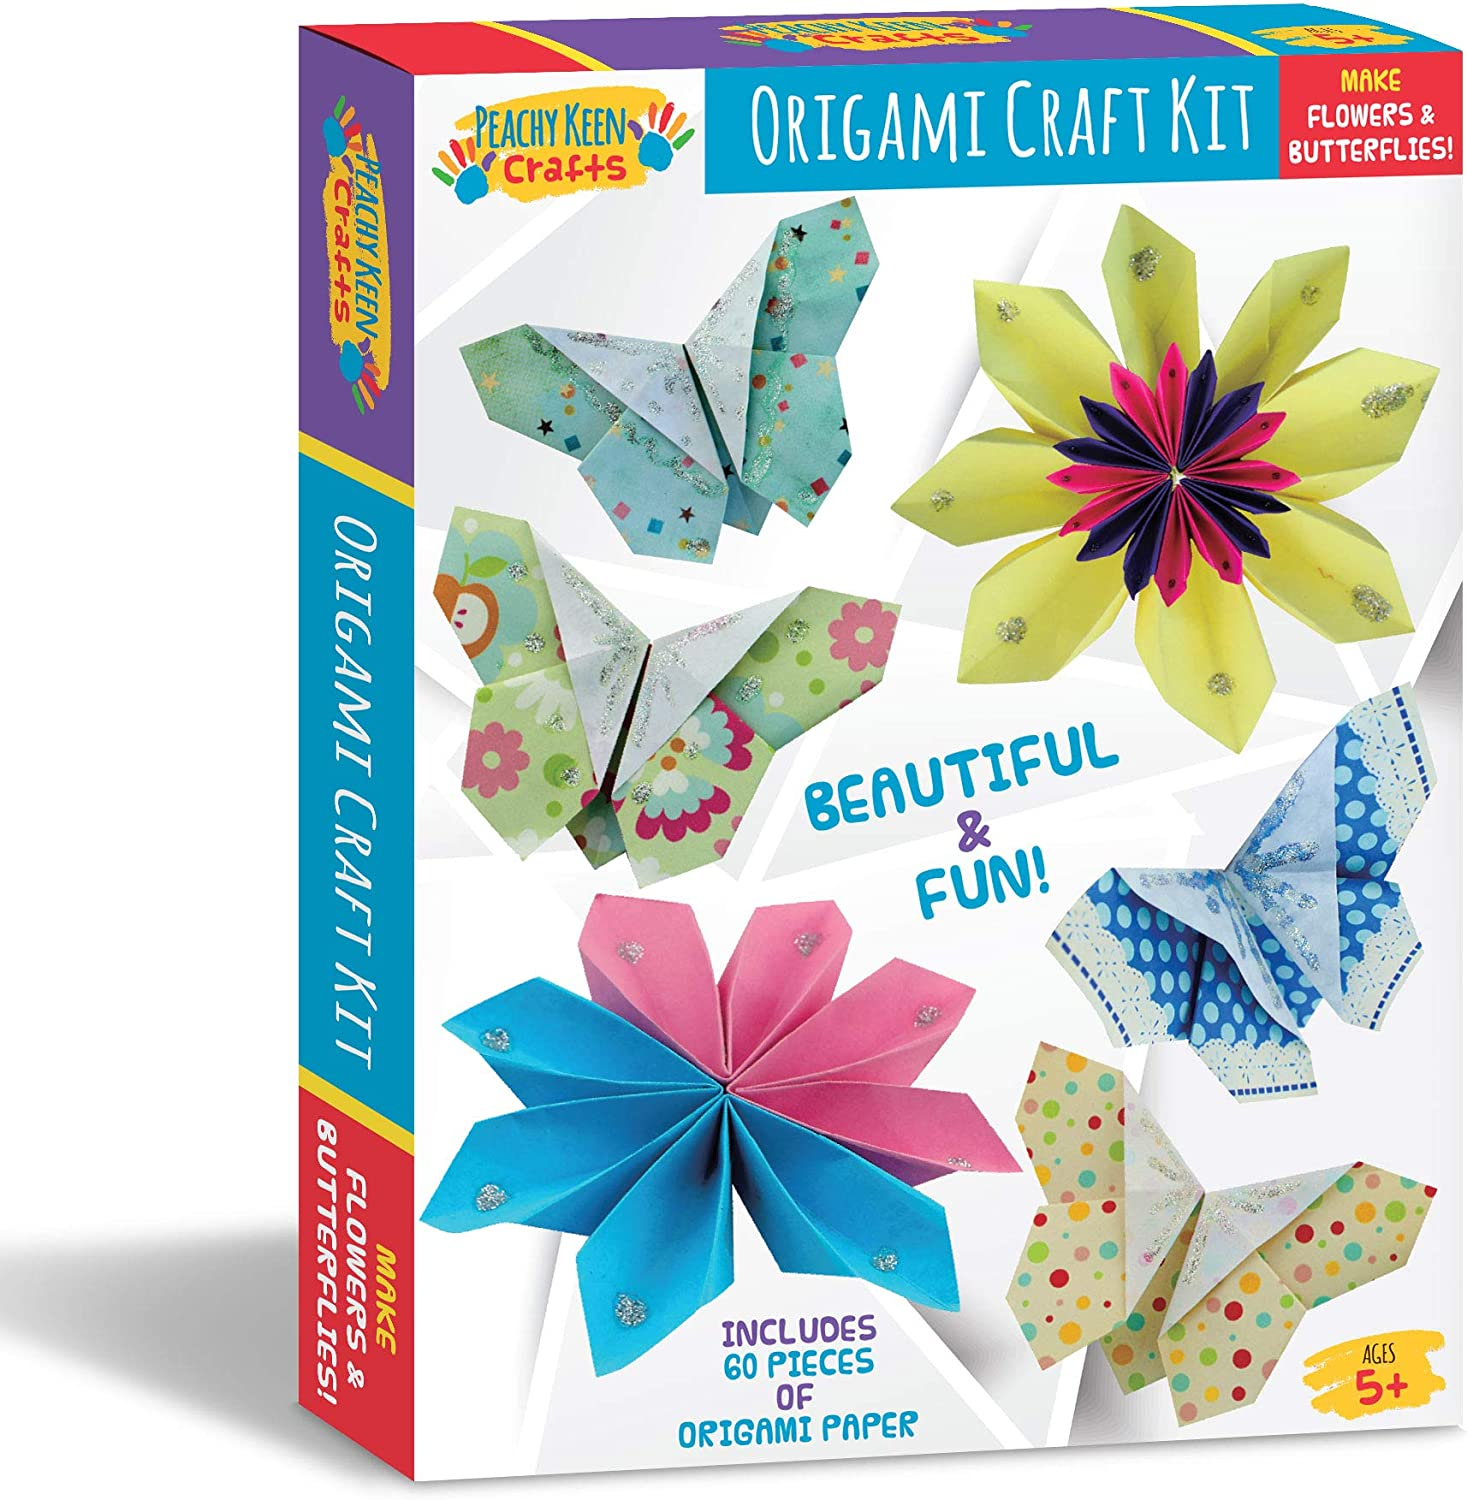 Amazon.com: Peachy Keen Crafts Beginners Origami Kit de ...